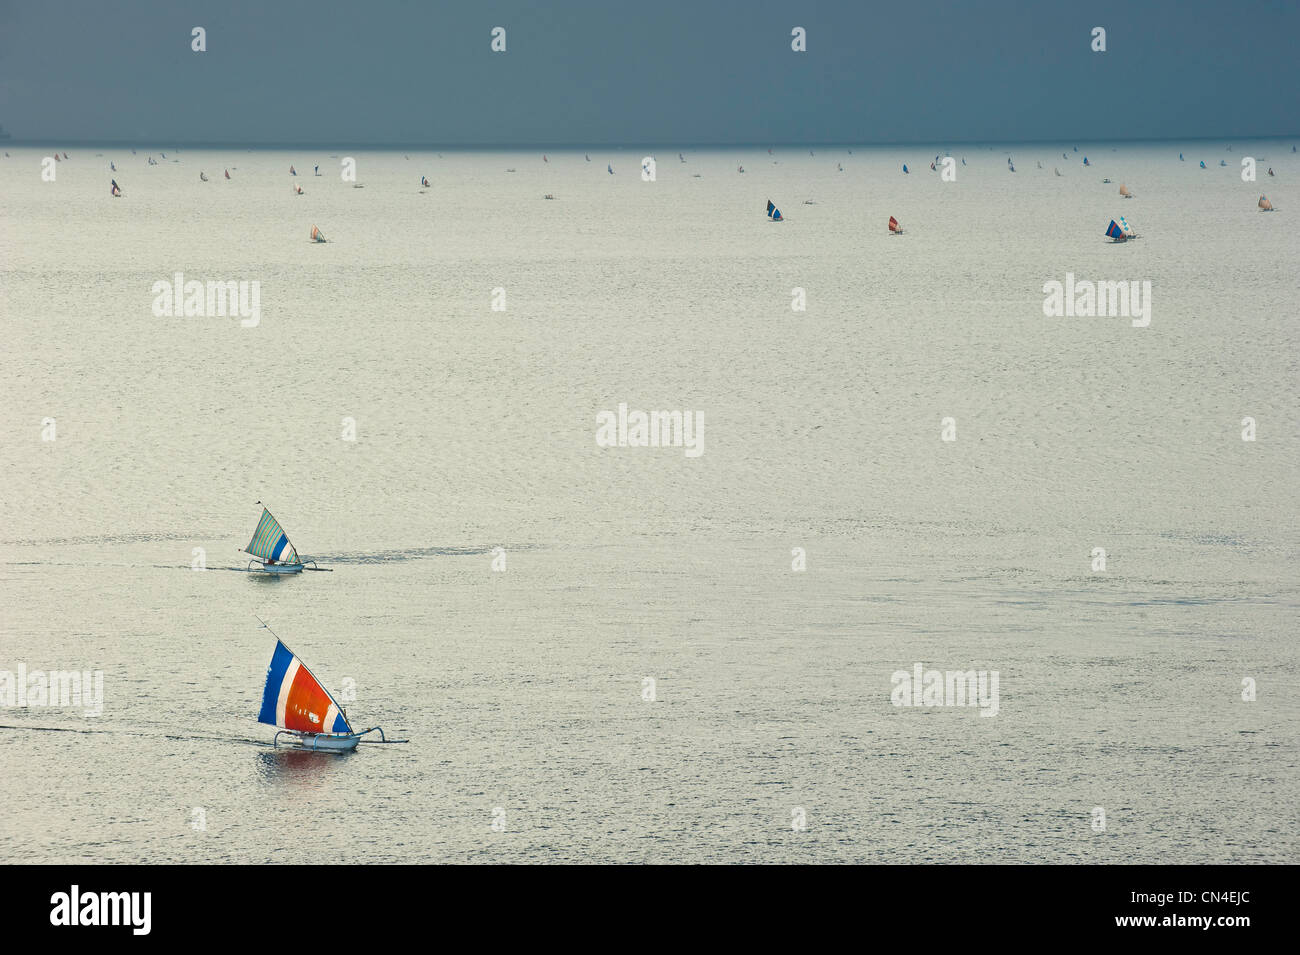 Indonesia, Bali Island, Amed village, canoe called Perahunelayan near Bunutan beach - Stock Image